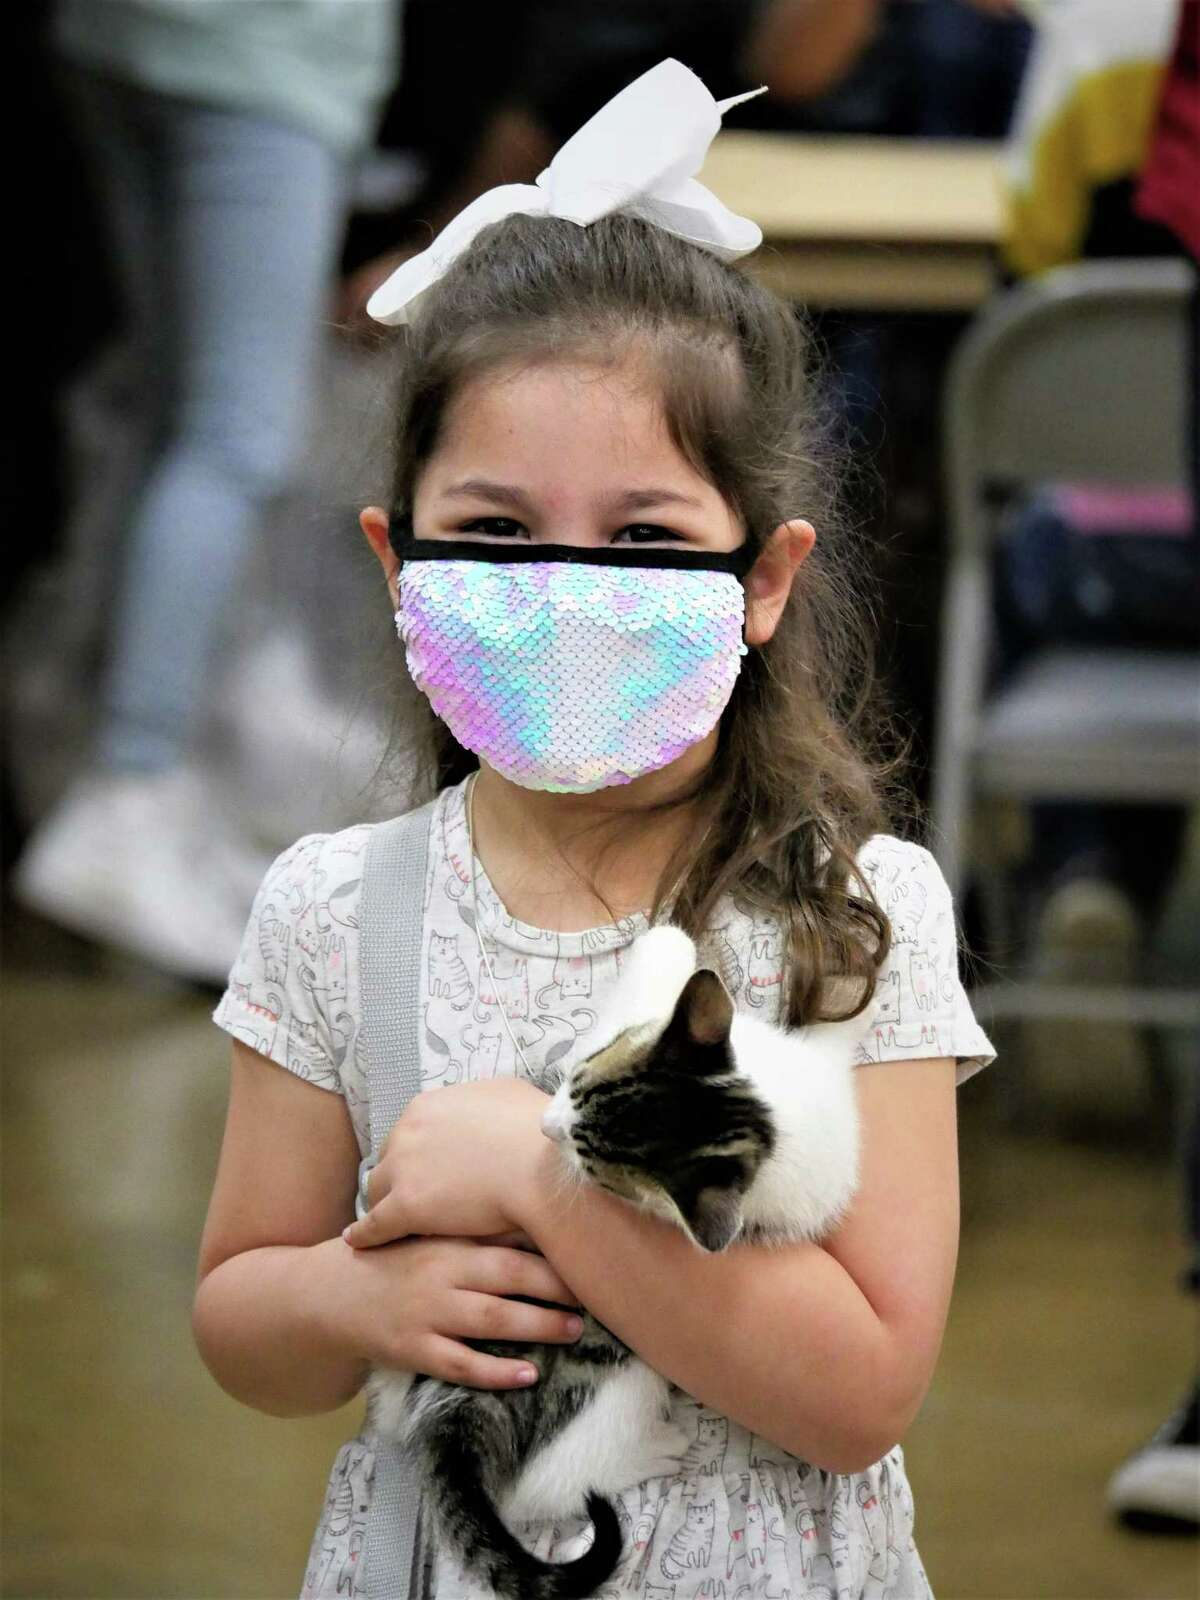 With more than 200 cats representing over 40 different breeds, the show also serves as an informational hub for cat owners to learn about feline health and provides adoption opportunities for families.